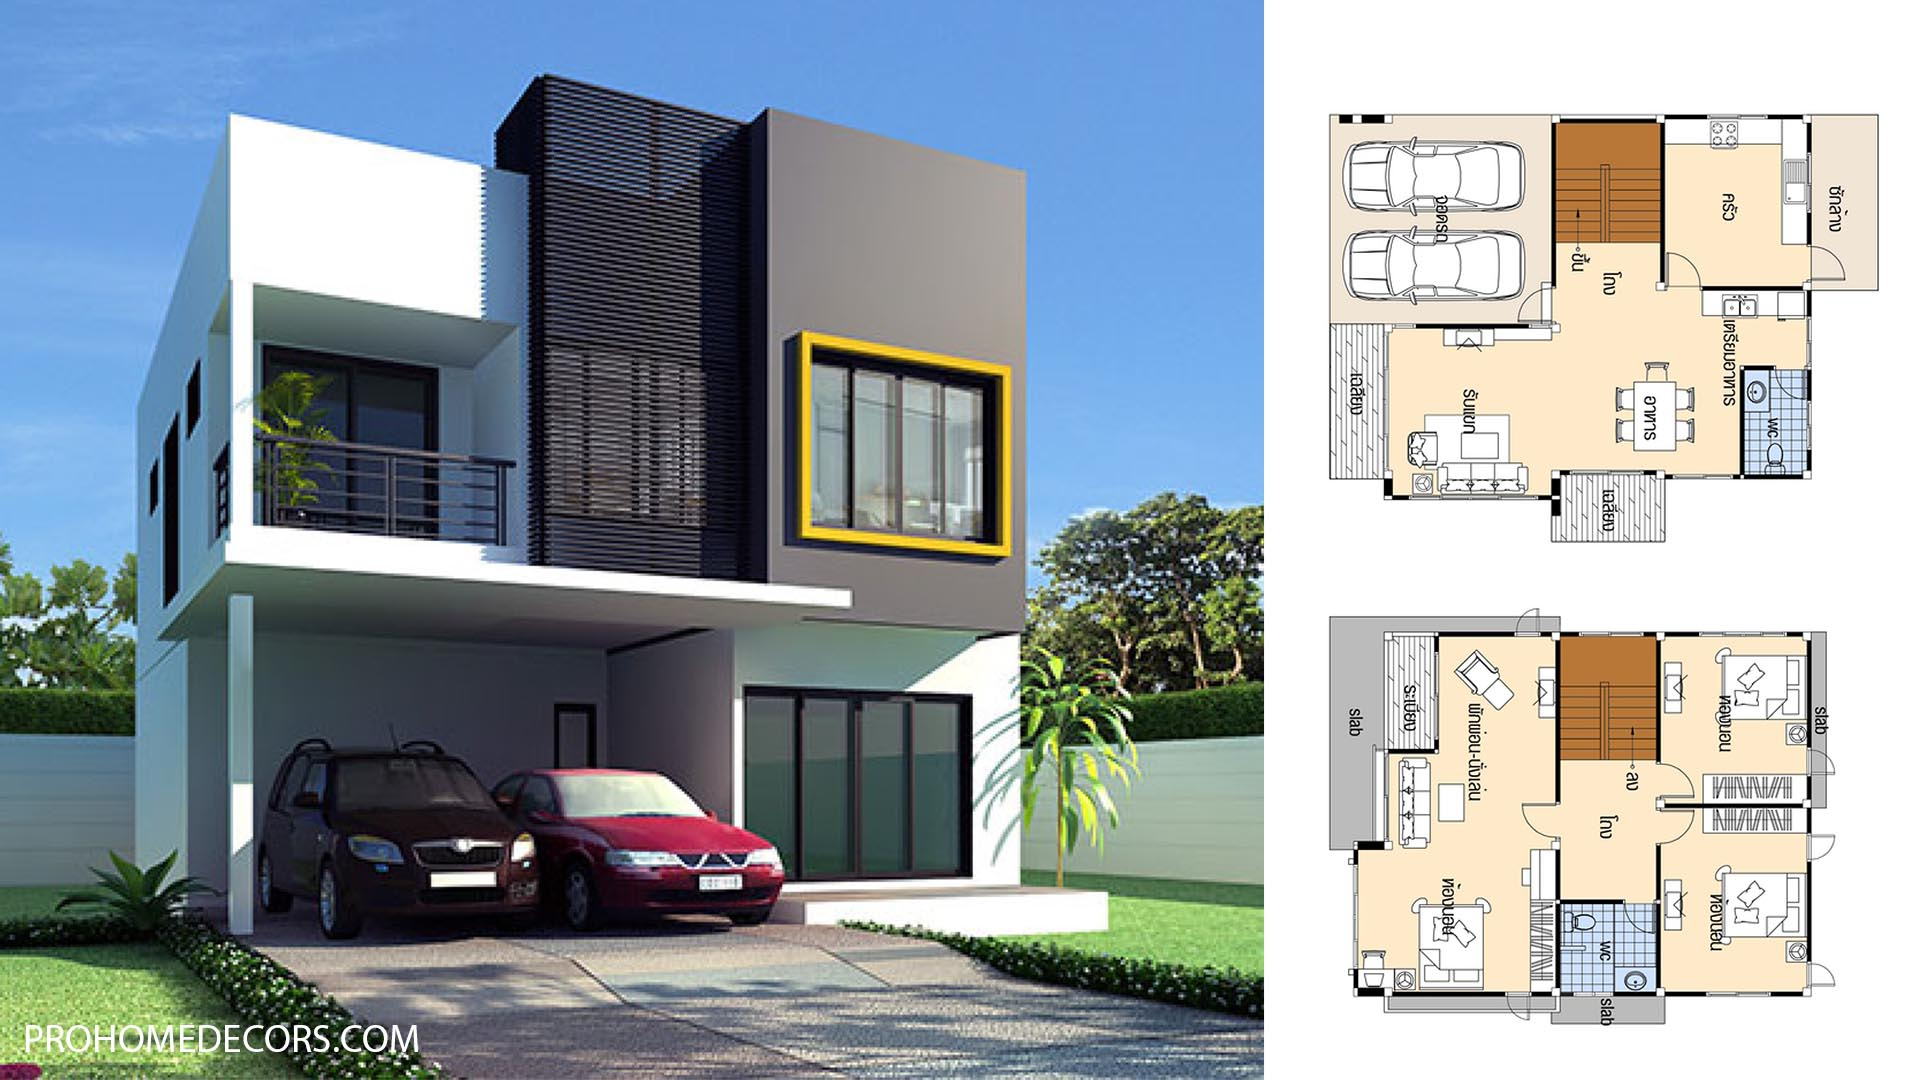 House Plans 9×12 with 3 Bedrooms